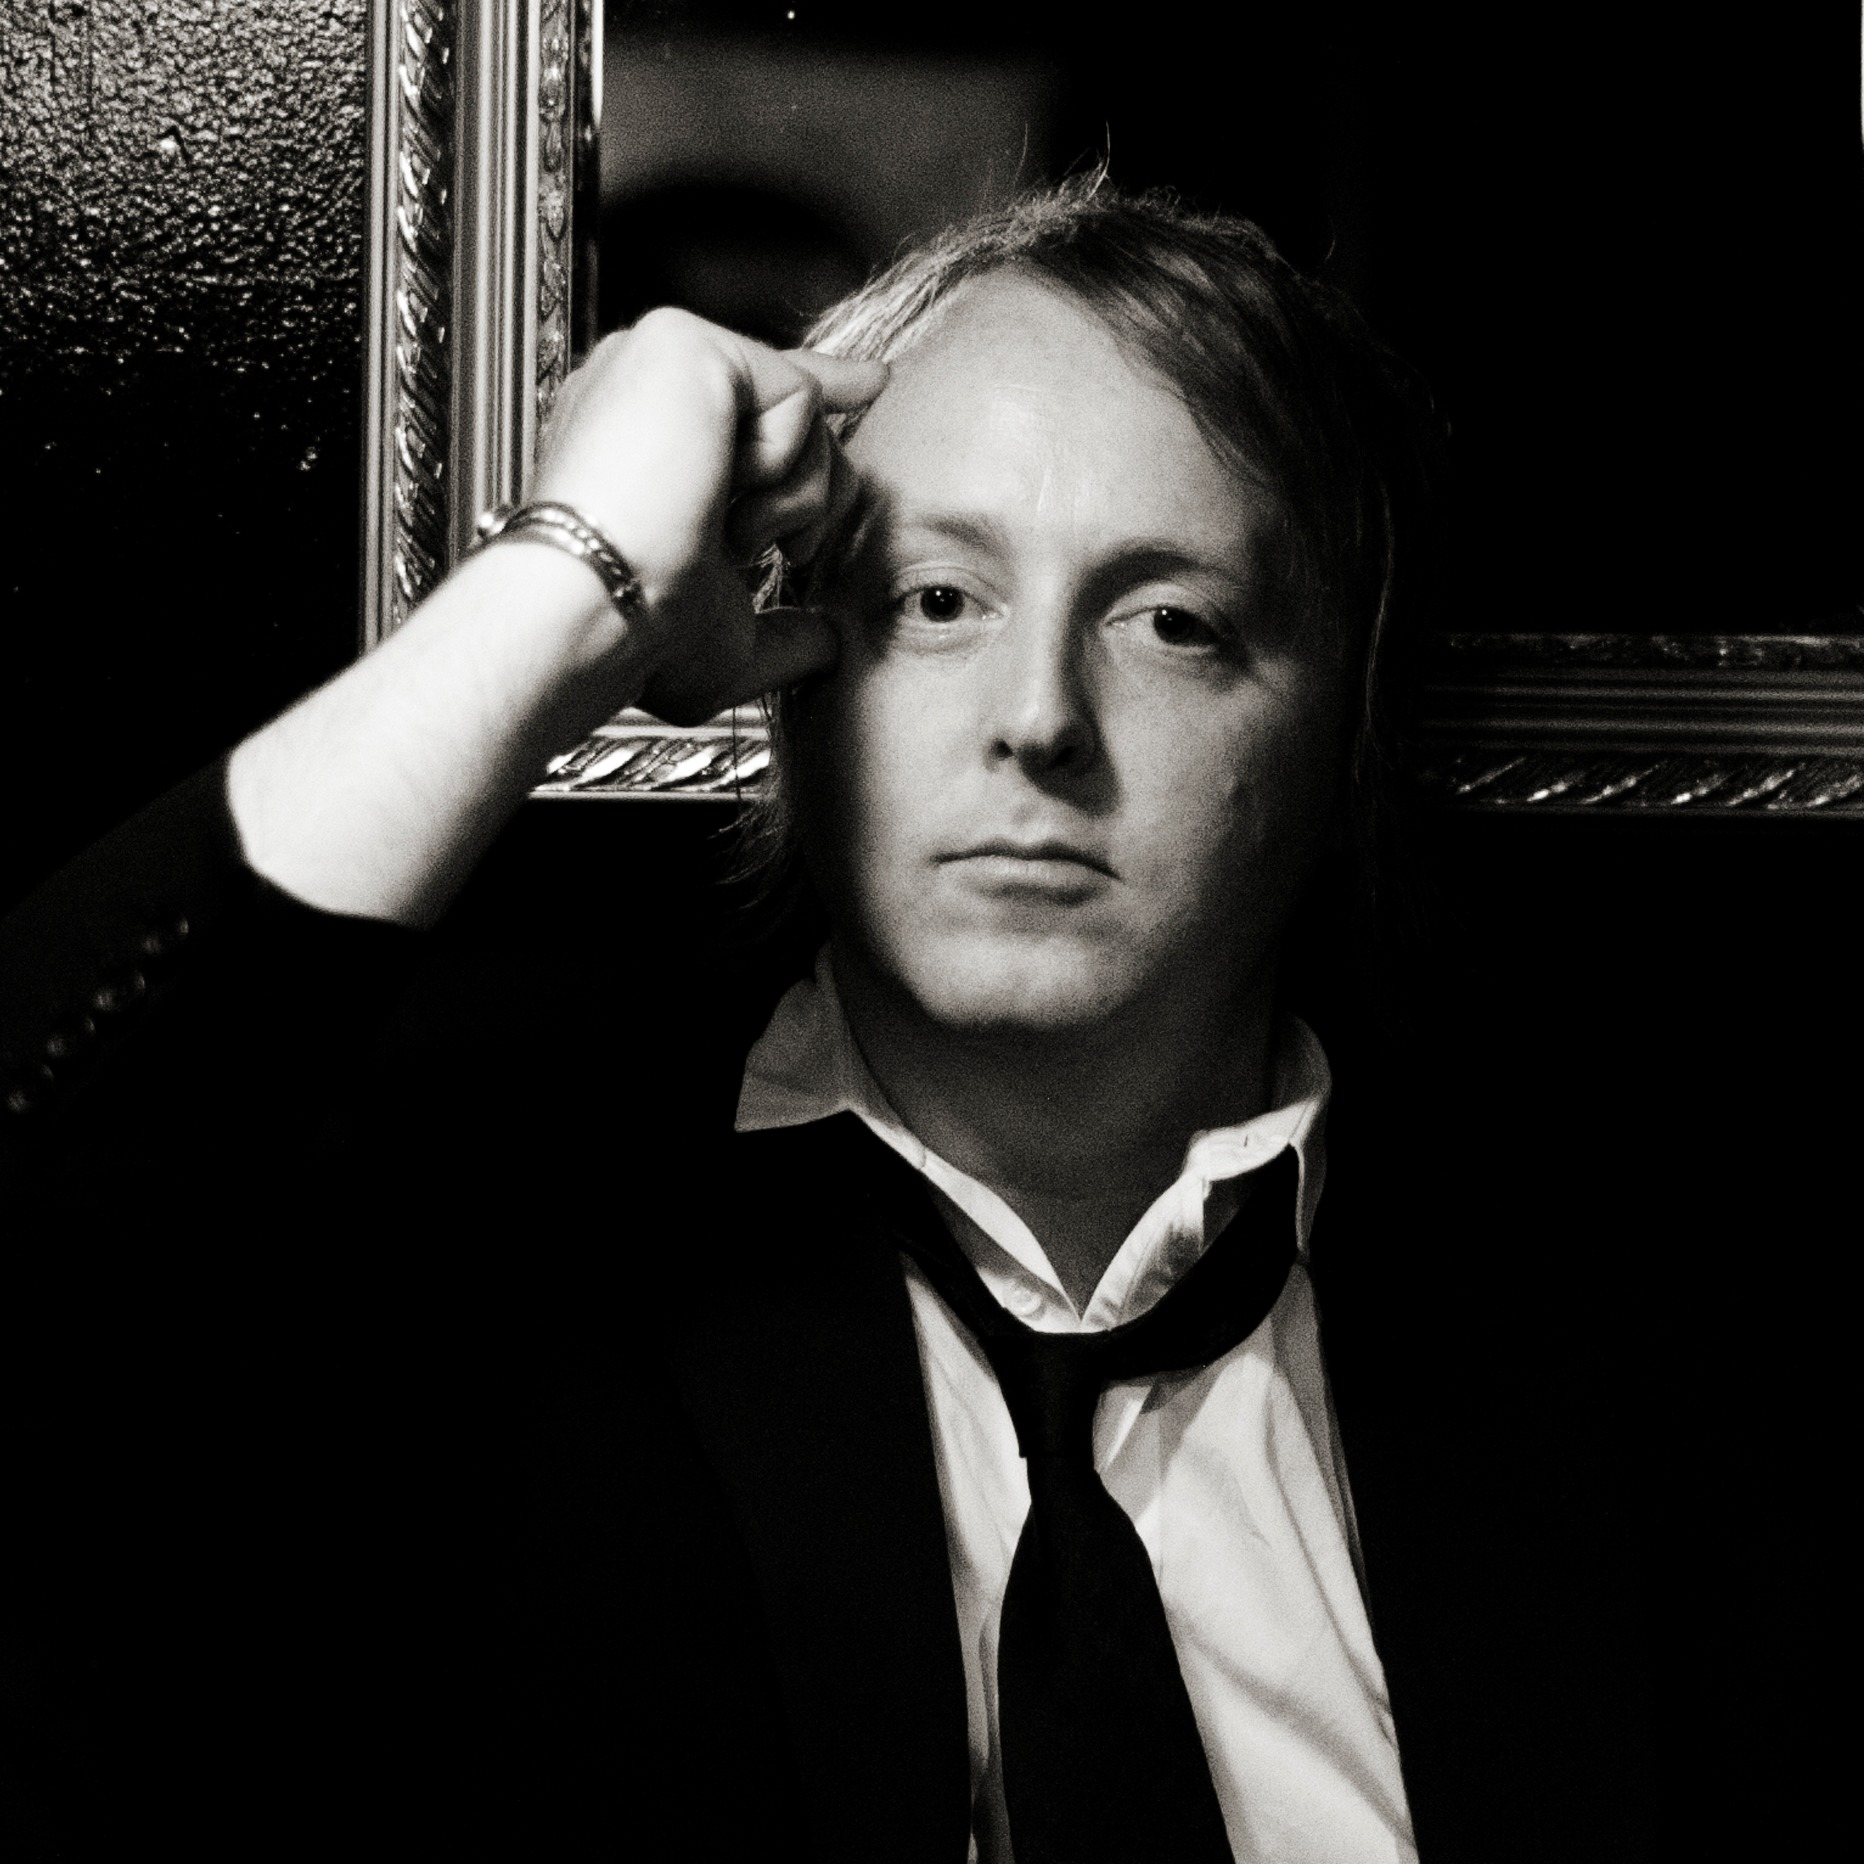 Darren Devivo picks James McCartney as one of his favorite FUV Sessions